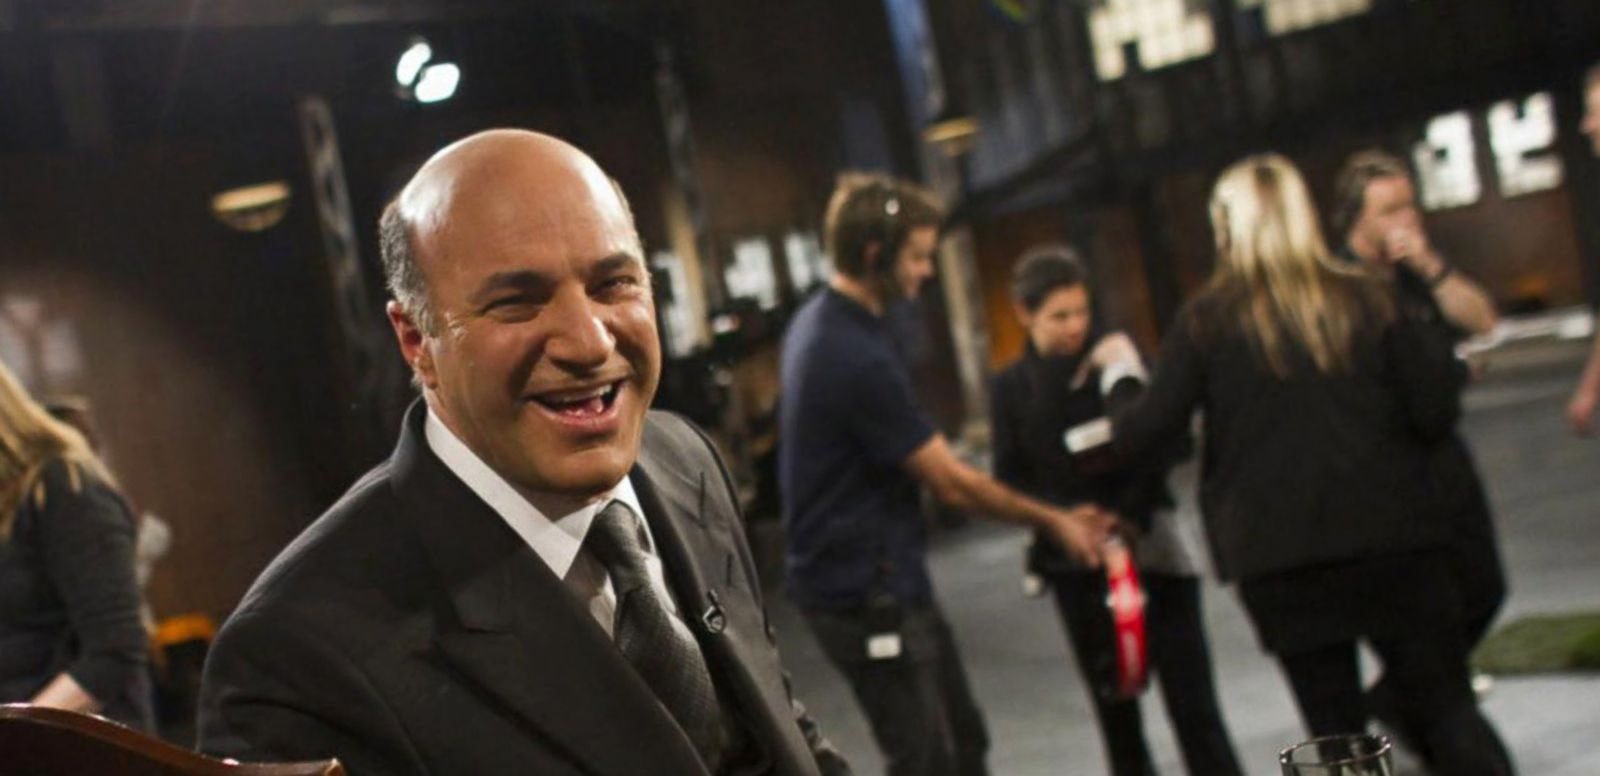 VIDEO: 'Shark Tank' Shark Kevin O'Leary Names His Top 5 Sales Techniques